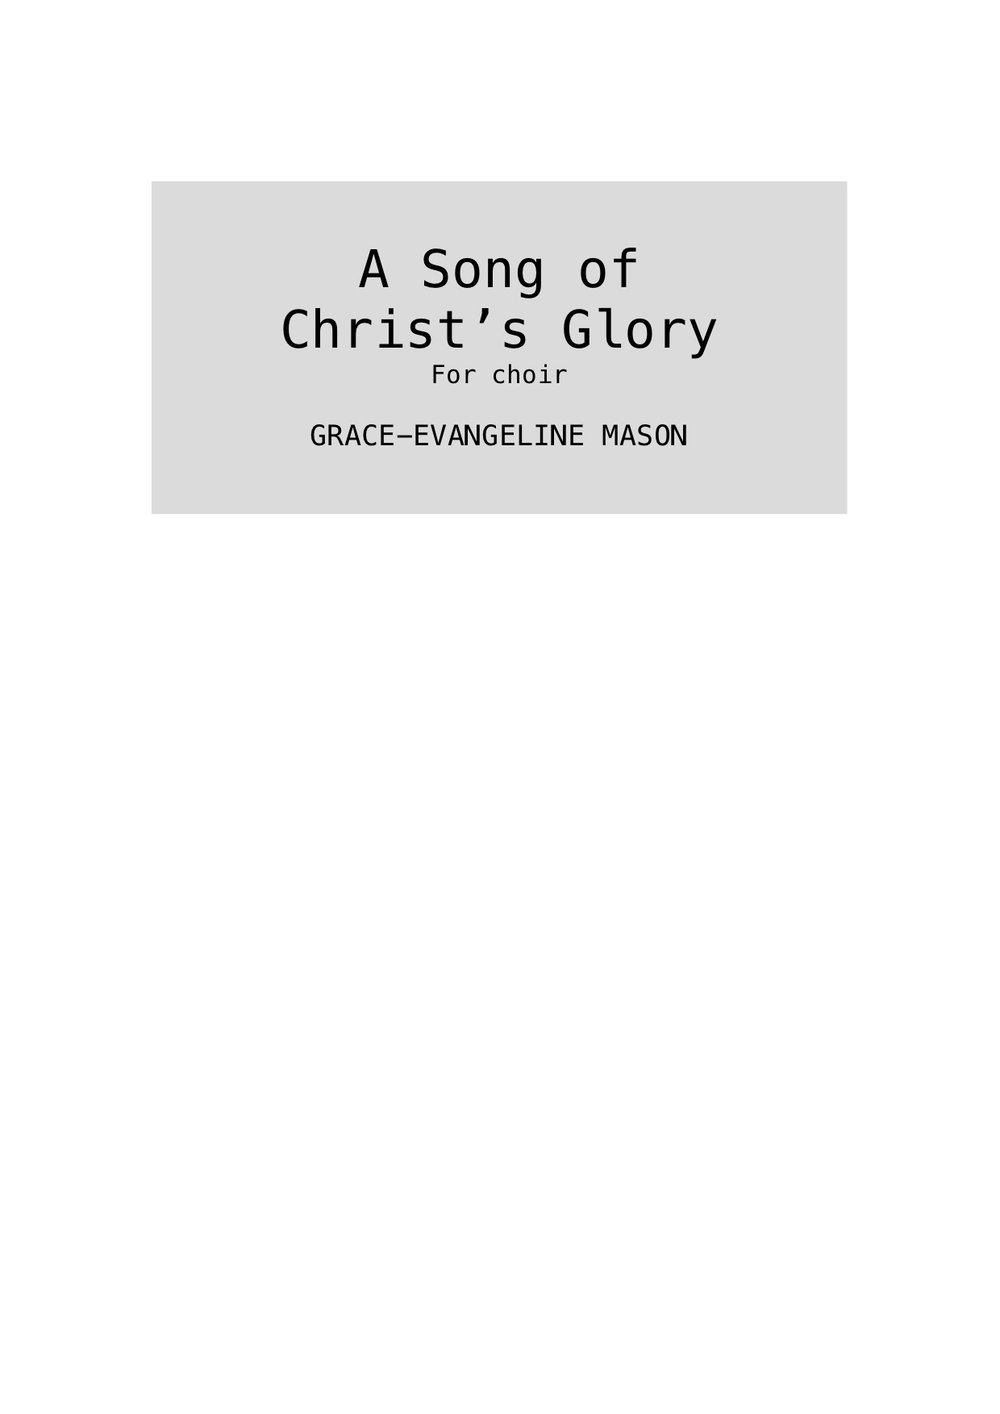 """'A Song of Christ's Glory' (2019) - For SATB choirApprox. Duration: 3'30""""First performed by the Chapel Choir of Emmanuel College, Cambridge (03/03/19)A setting of Philippians 2:5-11 from the KJV and Wycliffe translationsPhilippians 2:5-11Let this mind be in you, as in Christ Jesus:He lowered himself, in the form of a servant,He humbled himself, obedient unto death,The death of the cross.Wherefore God hath highly exalted him,And gave to him a name above all names;That at the name of Jesus every knee shall bow,Of things in heaven, and things in earth,And things under the earth;And each tongue shall confess that Jesus Christ is Lord, To the glory of God the Father.- From the KJV and Wycliffe translations©Cover Image: 'Song of Glory' Painting by Grace-Evangeline Mason 2019"""